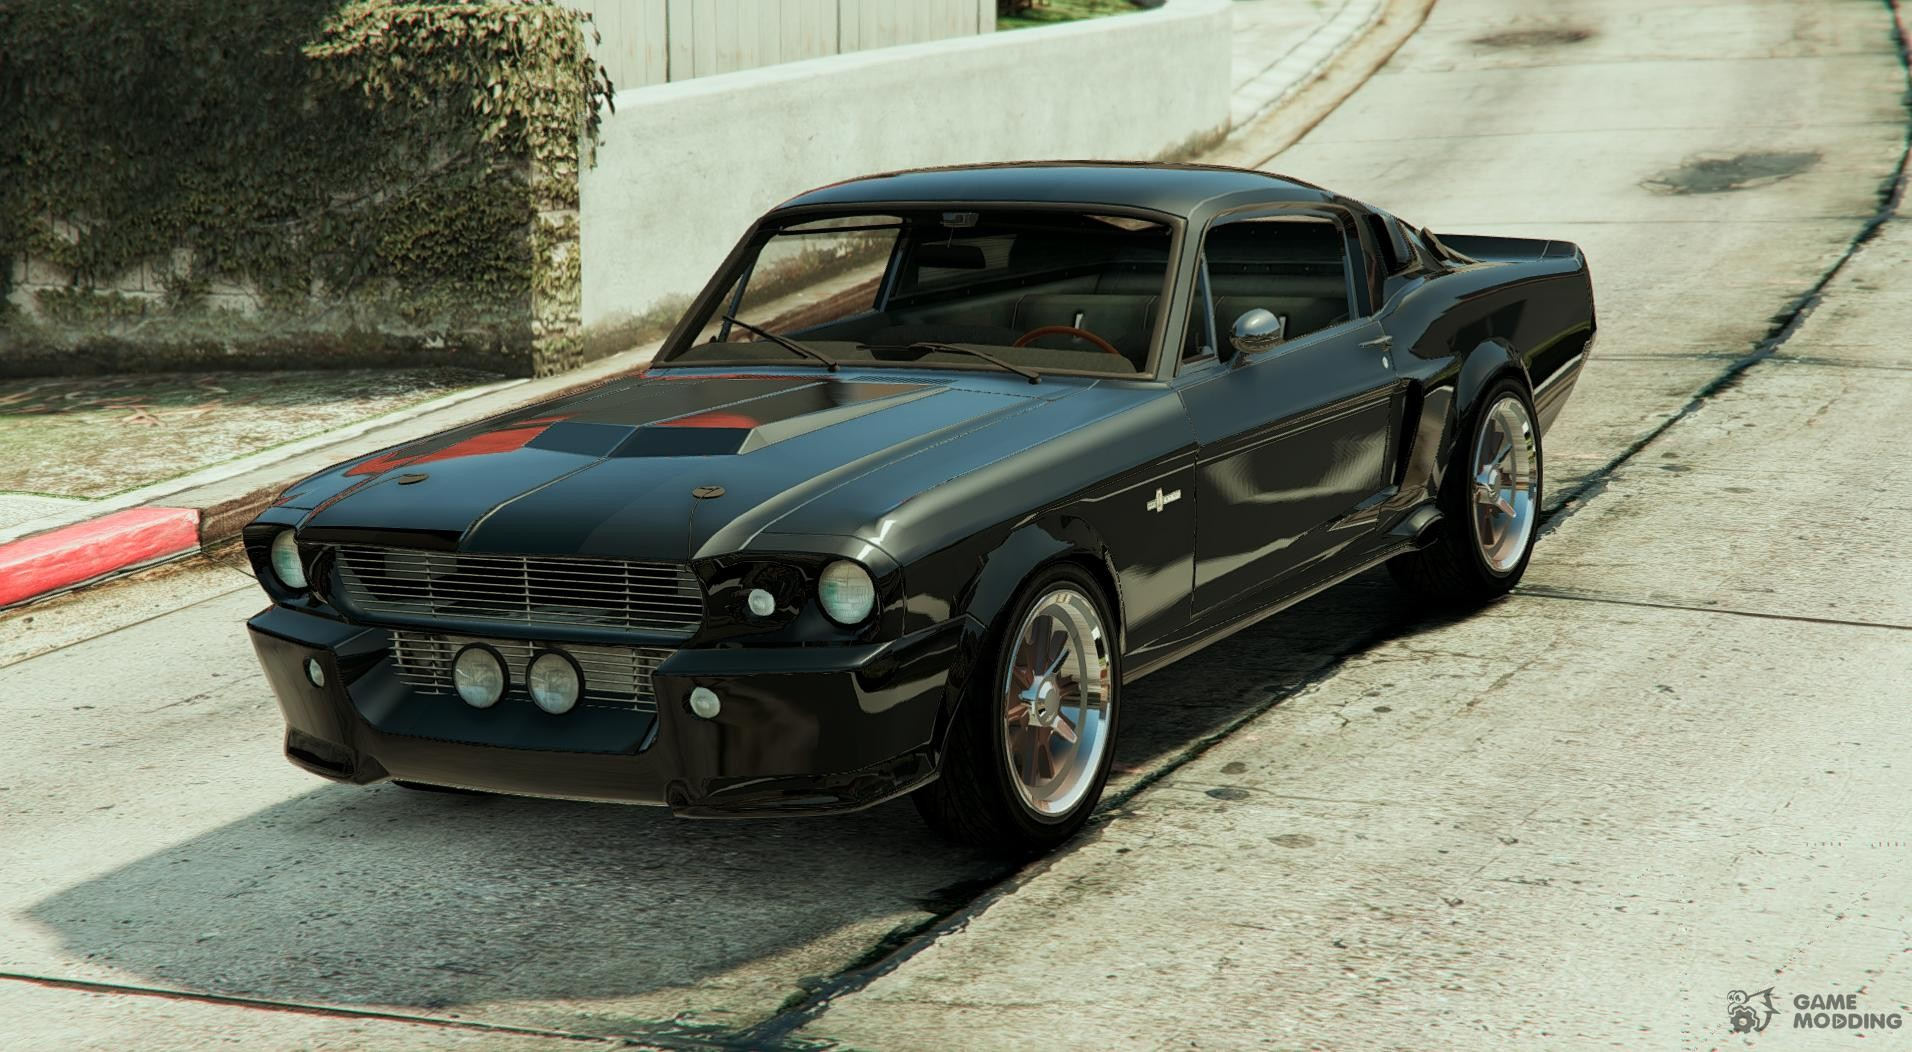 1967 Shelby Mustang GT500 Eleanor for GTA 5